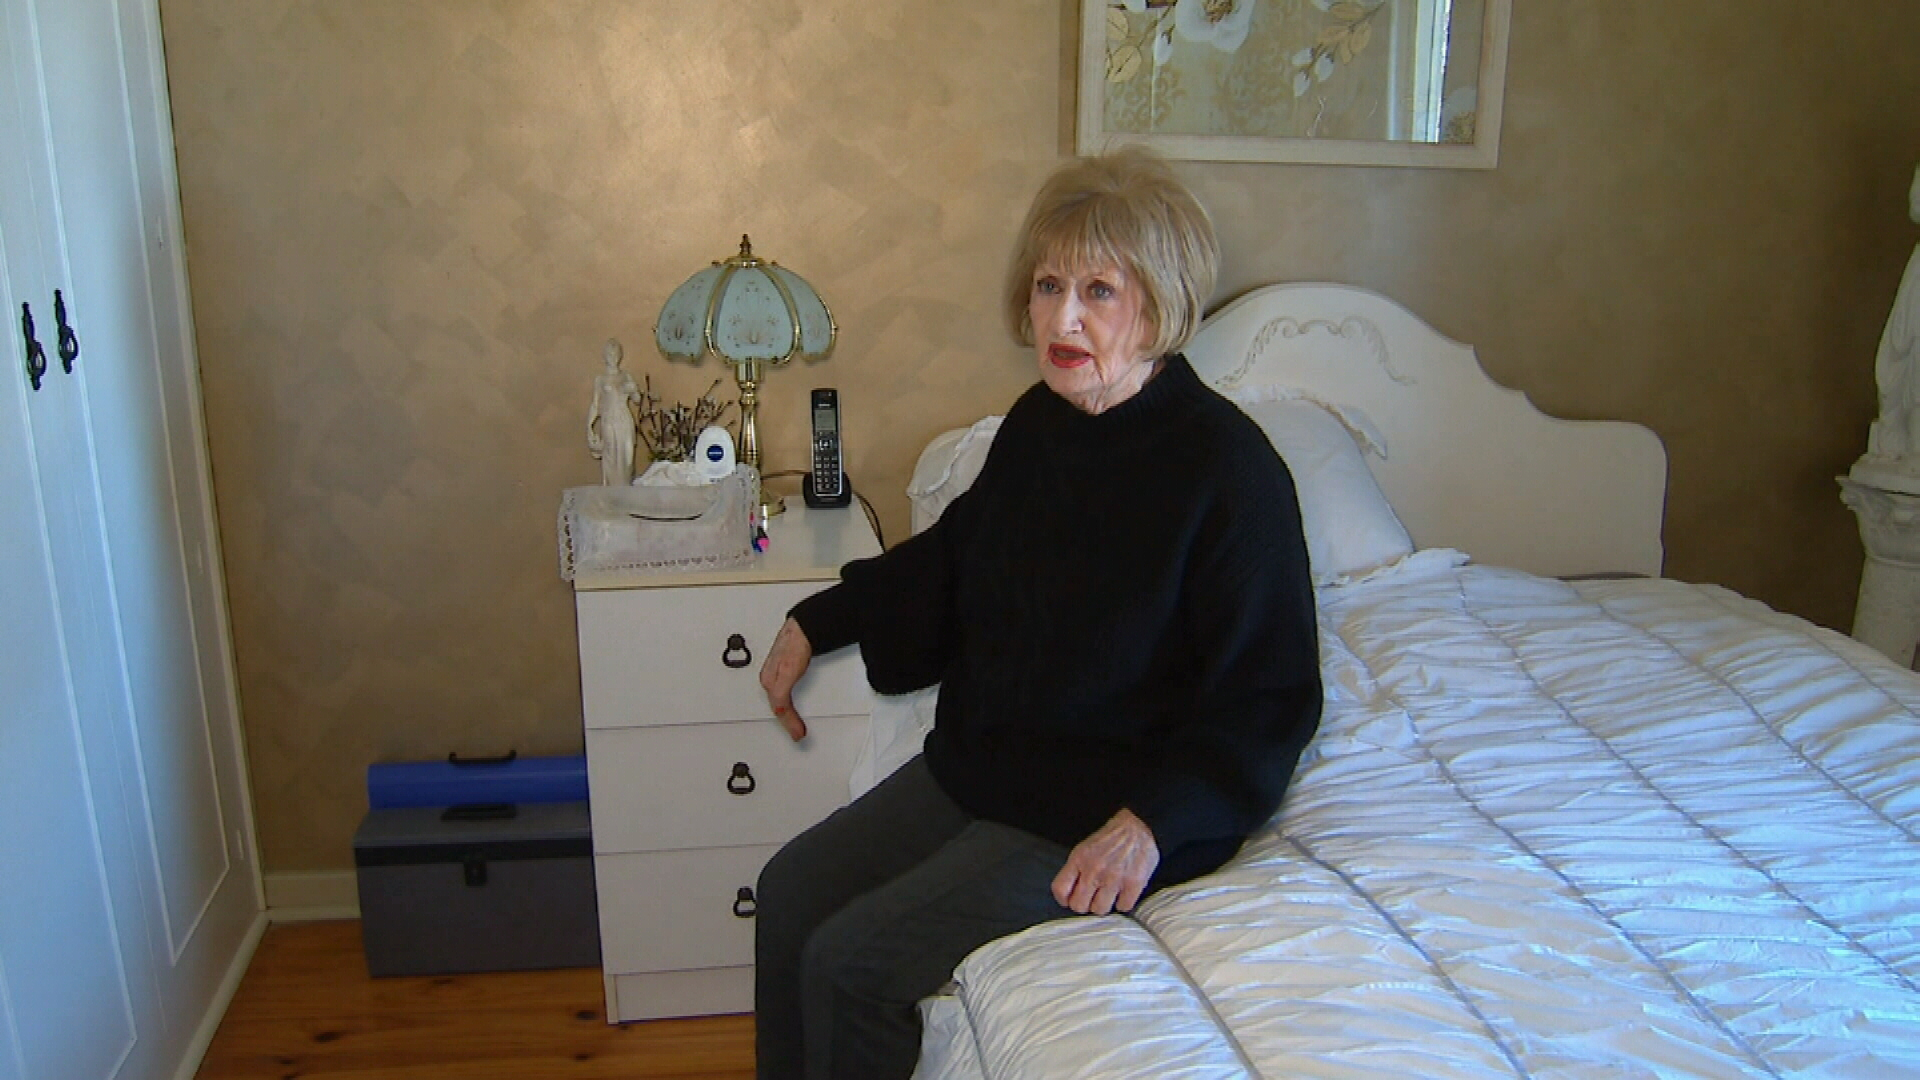 Elderly woman chases early morning intruder out of her home